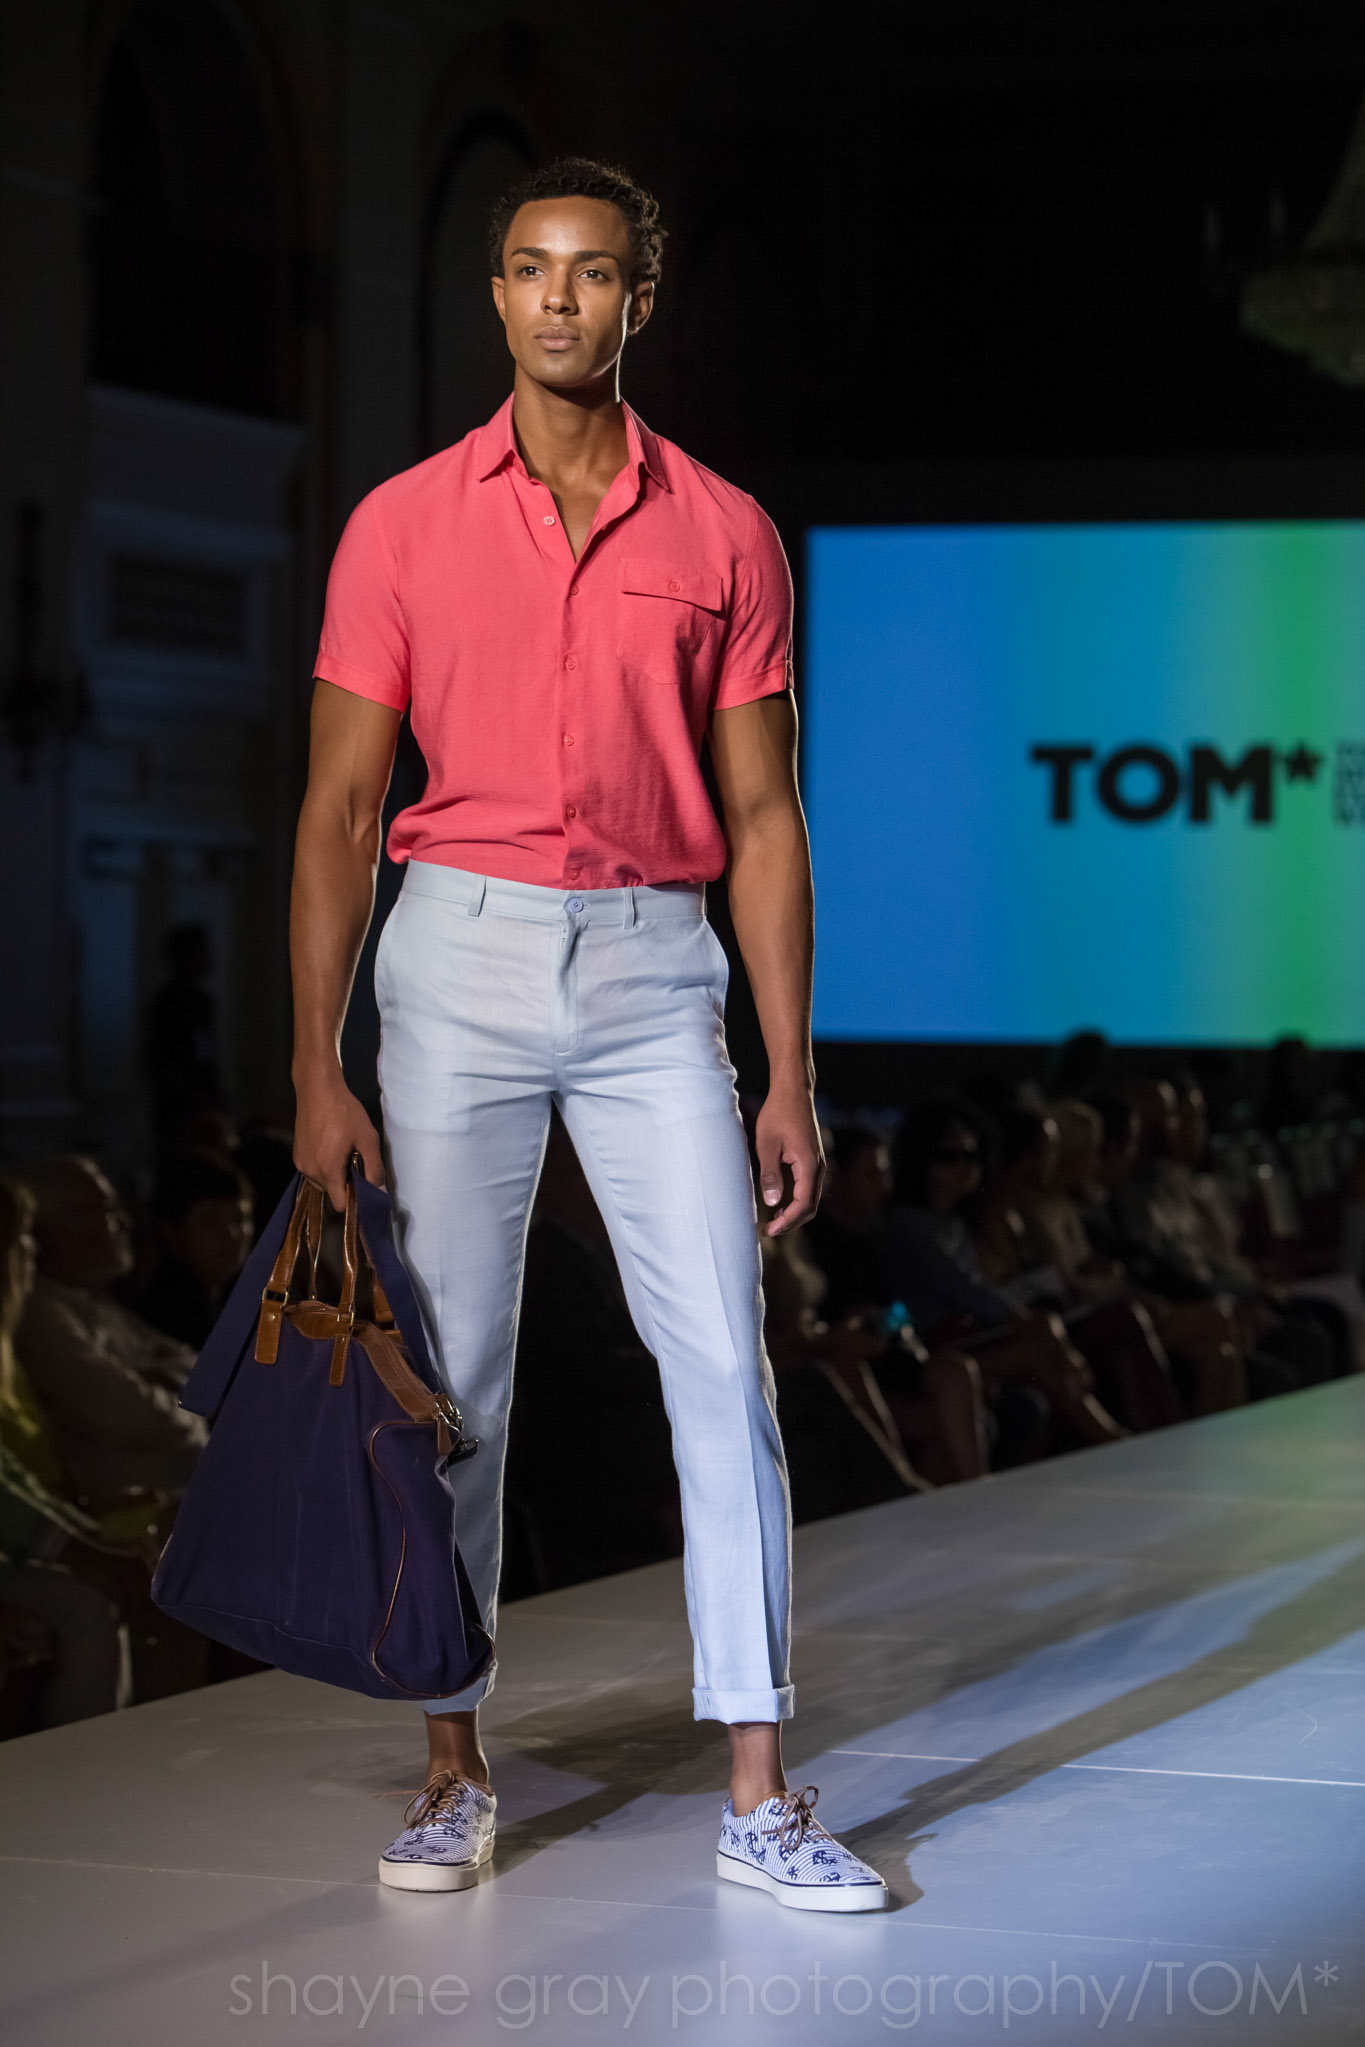 Shayne-Gray-Toronto-men's-fashion_week-TOM-just-ta-6076.jpg